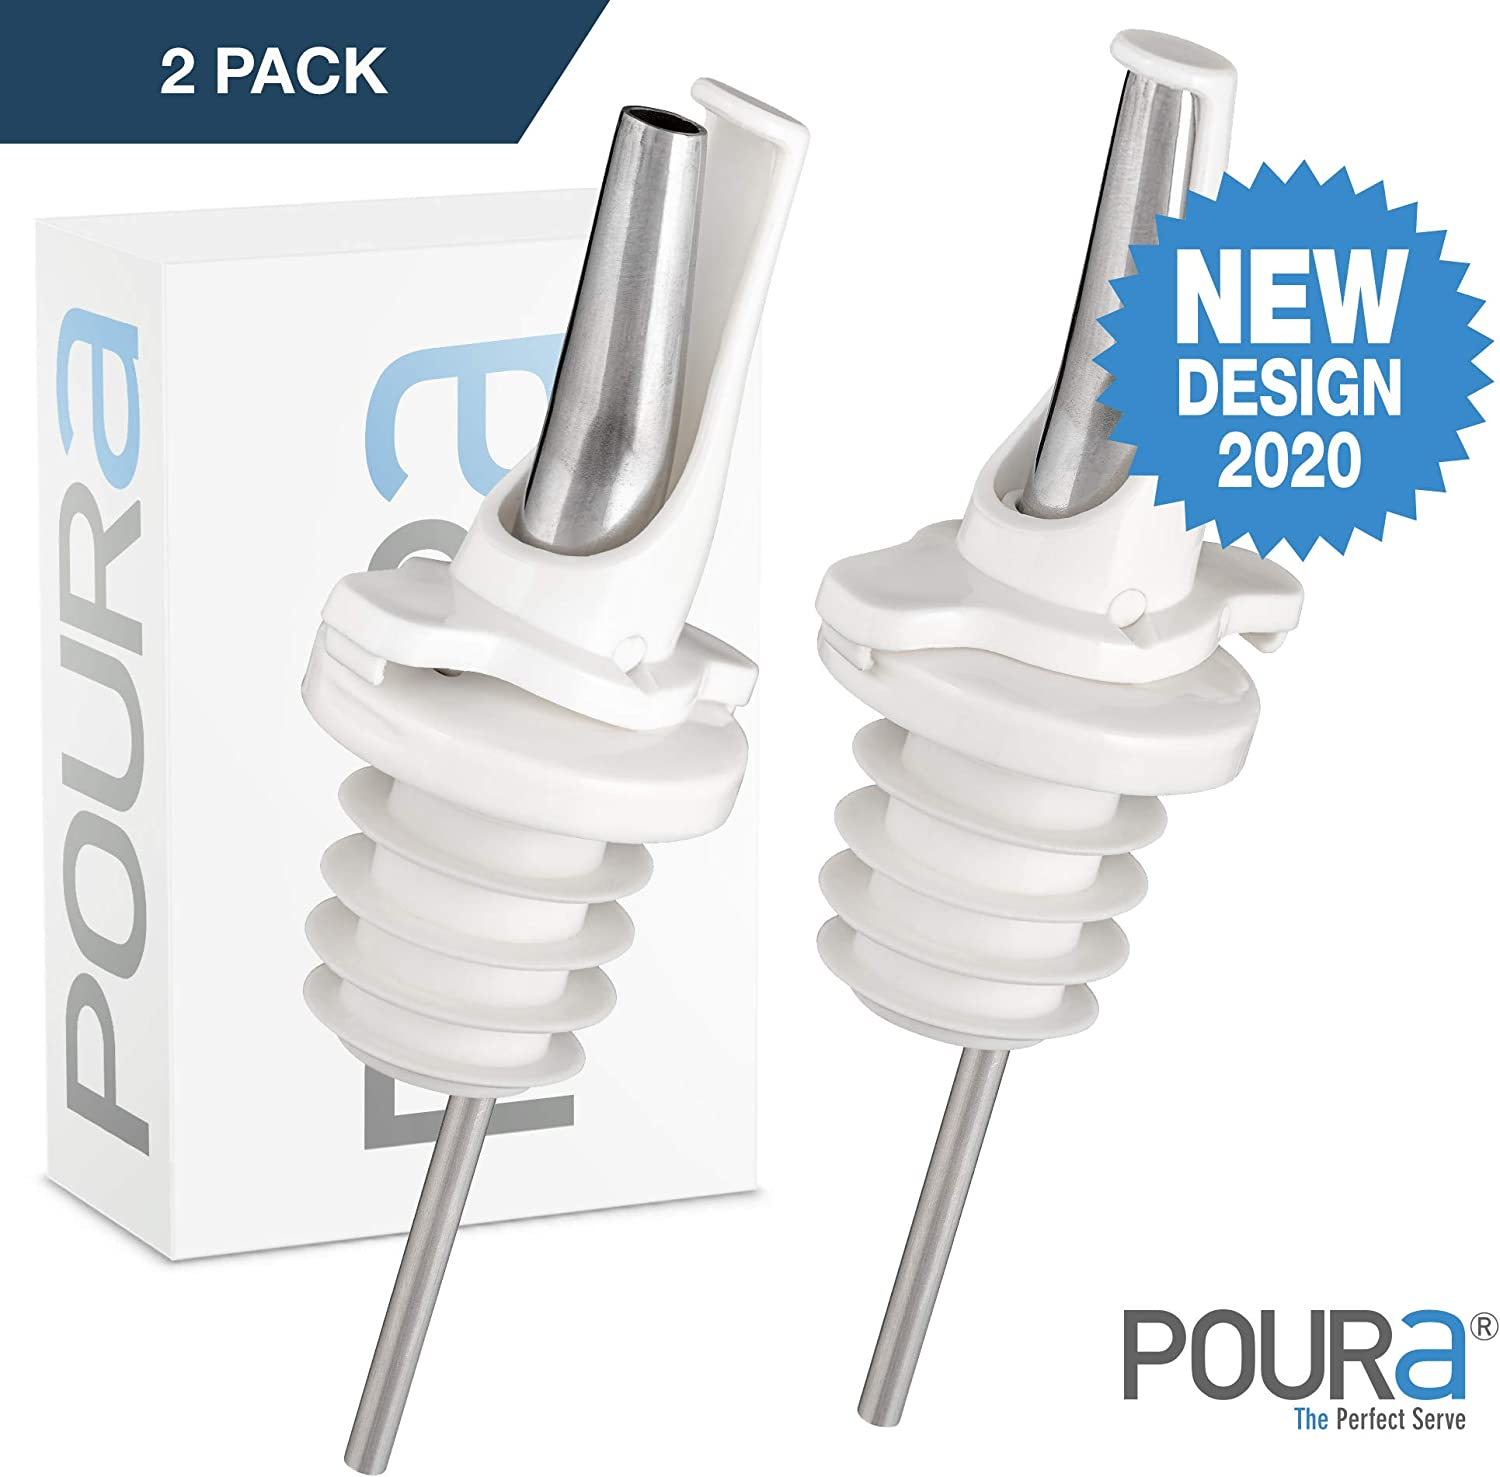 Patented Design Pour Spouts Black Liquor Bottle Pourers Fits Universally to Most Bottles 12 Pack Meet The New Standard of Bottle Pourers Open and Close for Mid Pour Shut Off